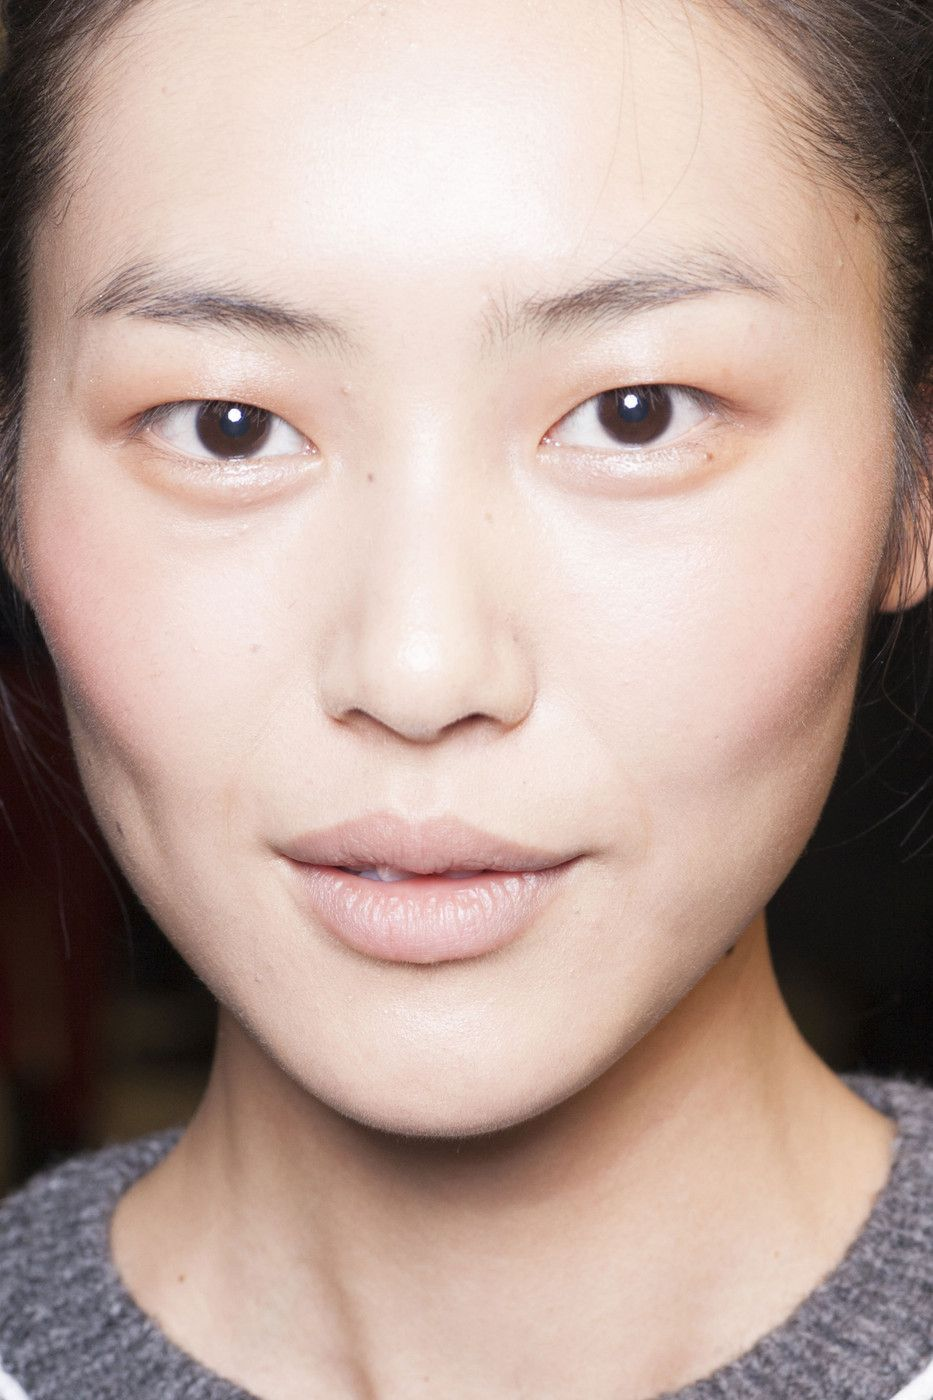 Prabal_Gurung_Fall_2013_Backstage_d7gat_Jy5zg_Jx